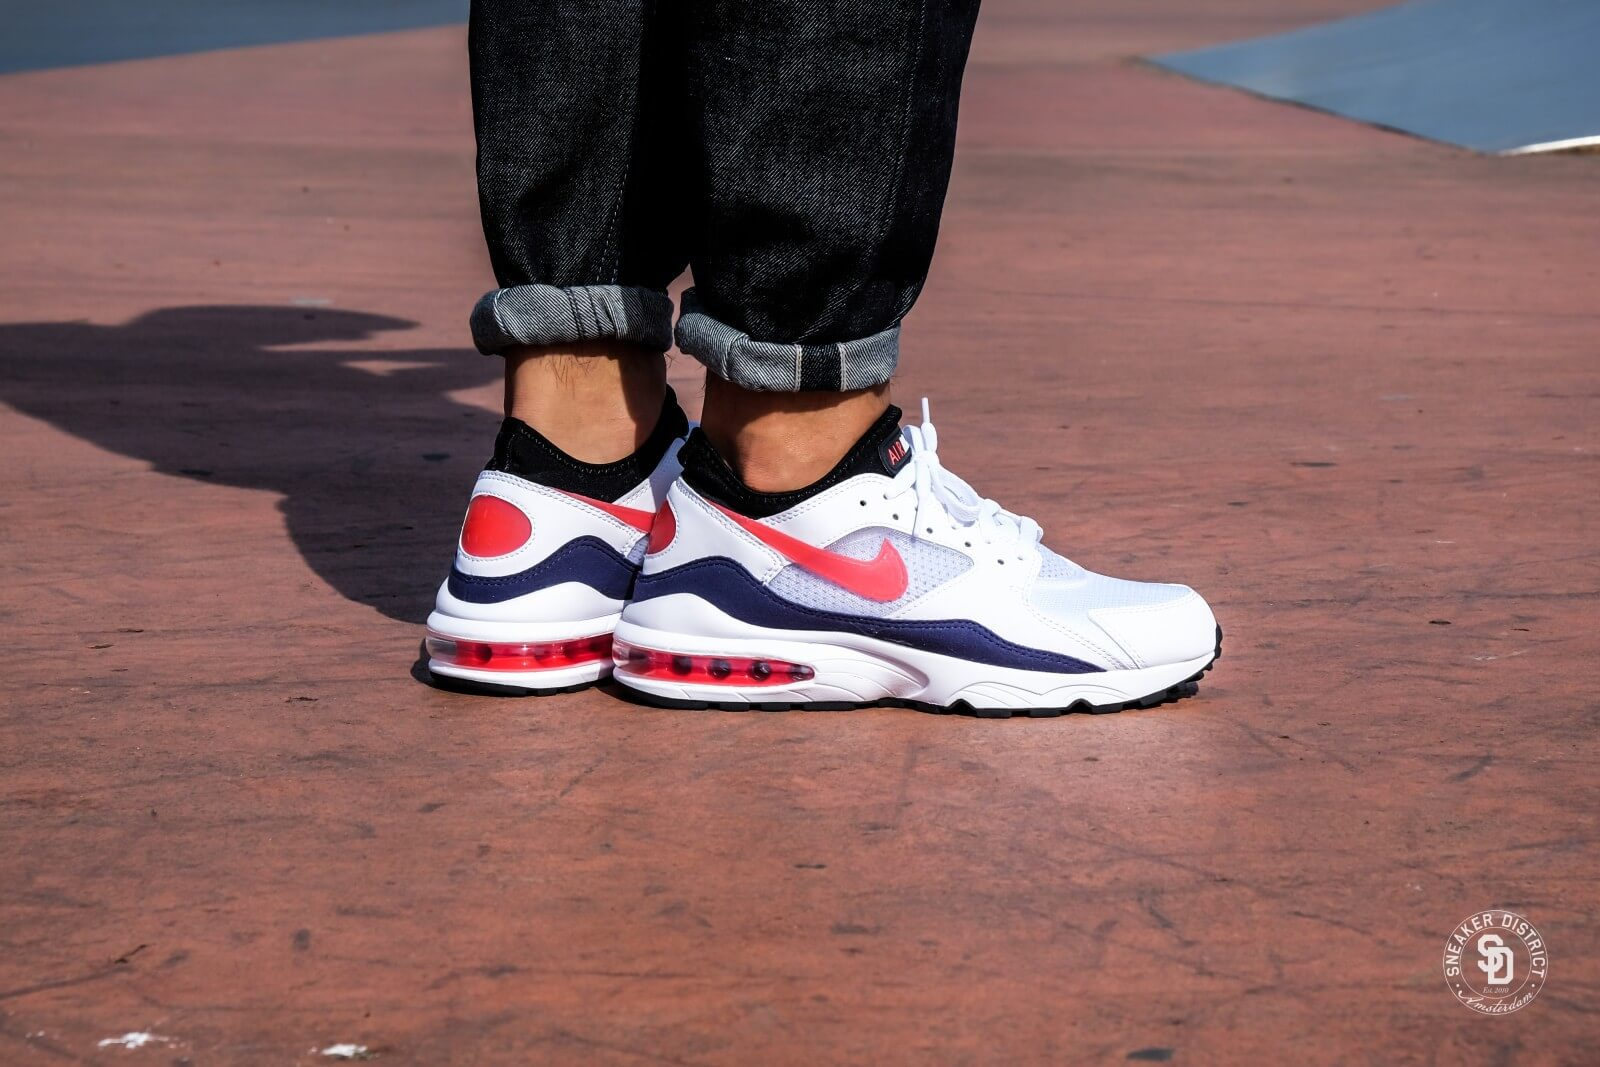 Nike Air Max 93 White/Habanero Red-Neutral Indigo - 306551-102